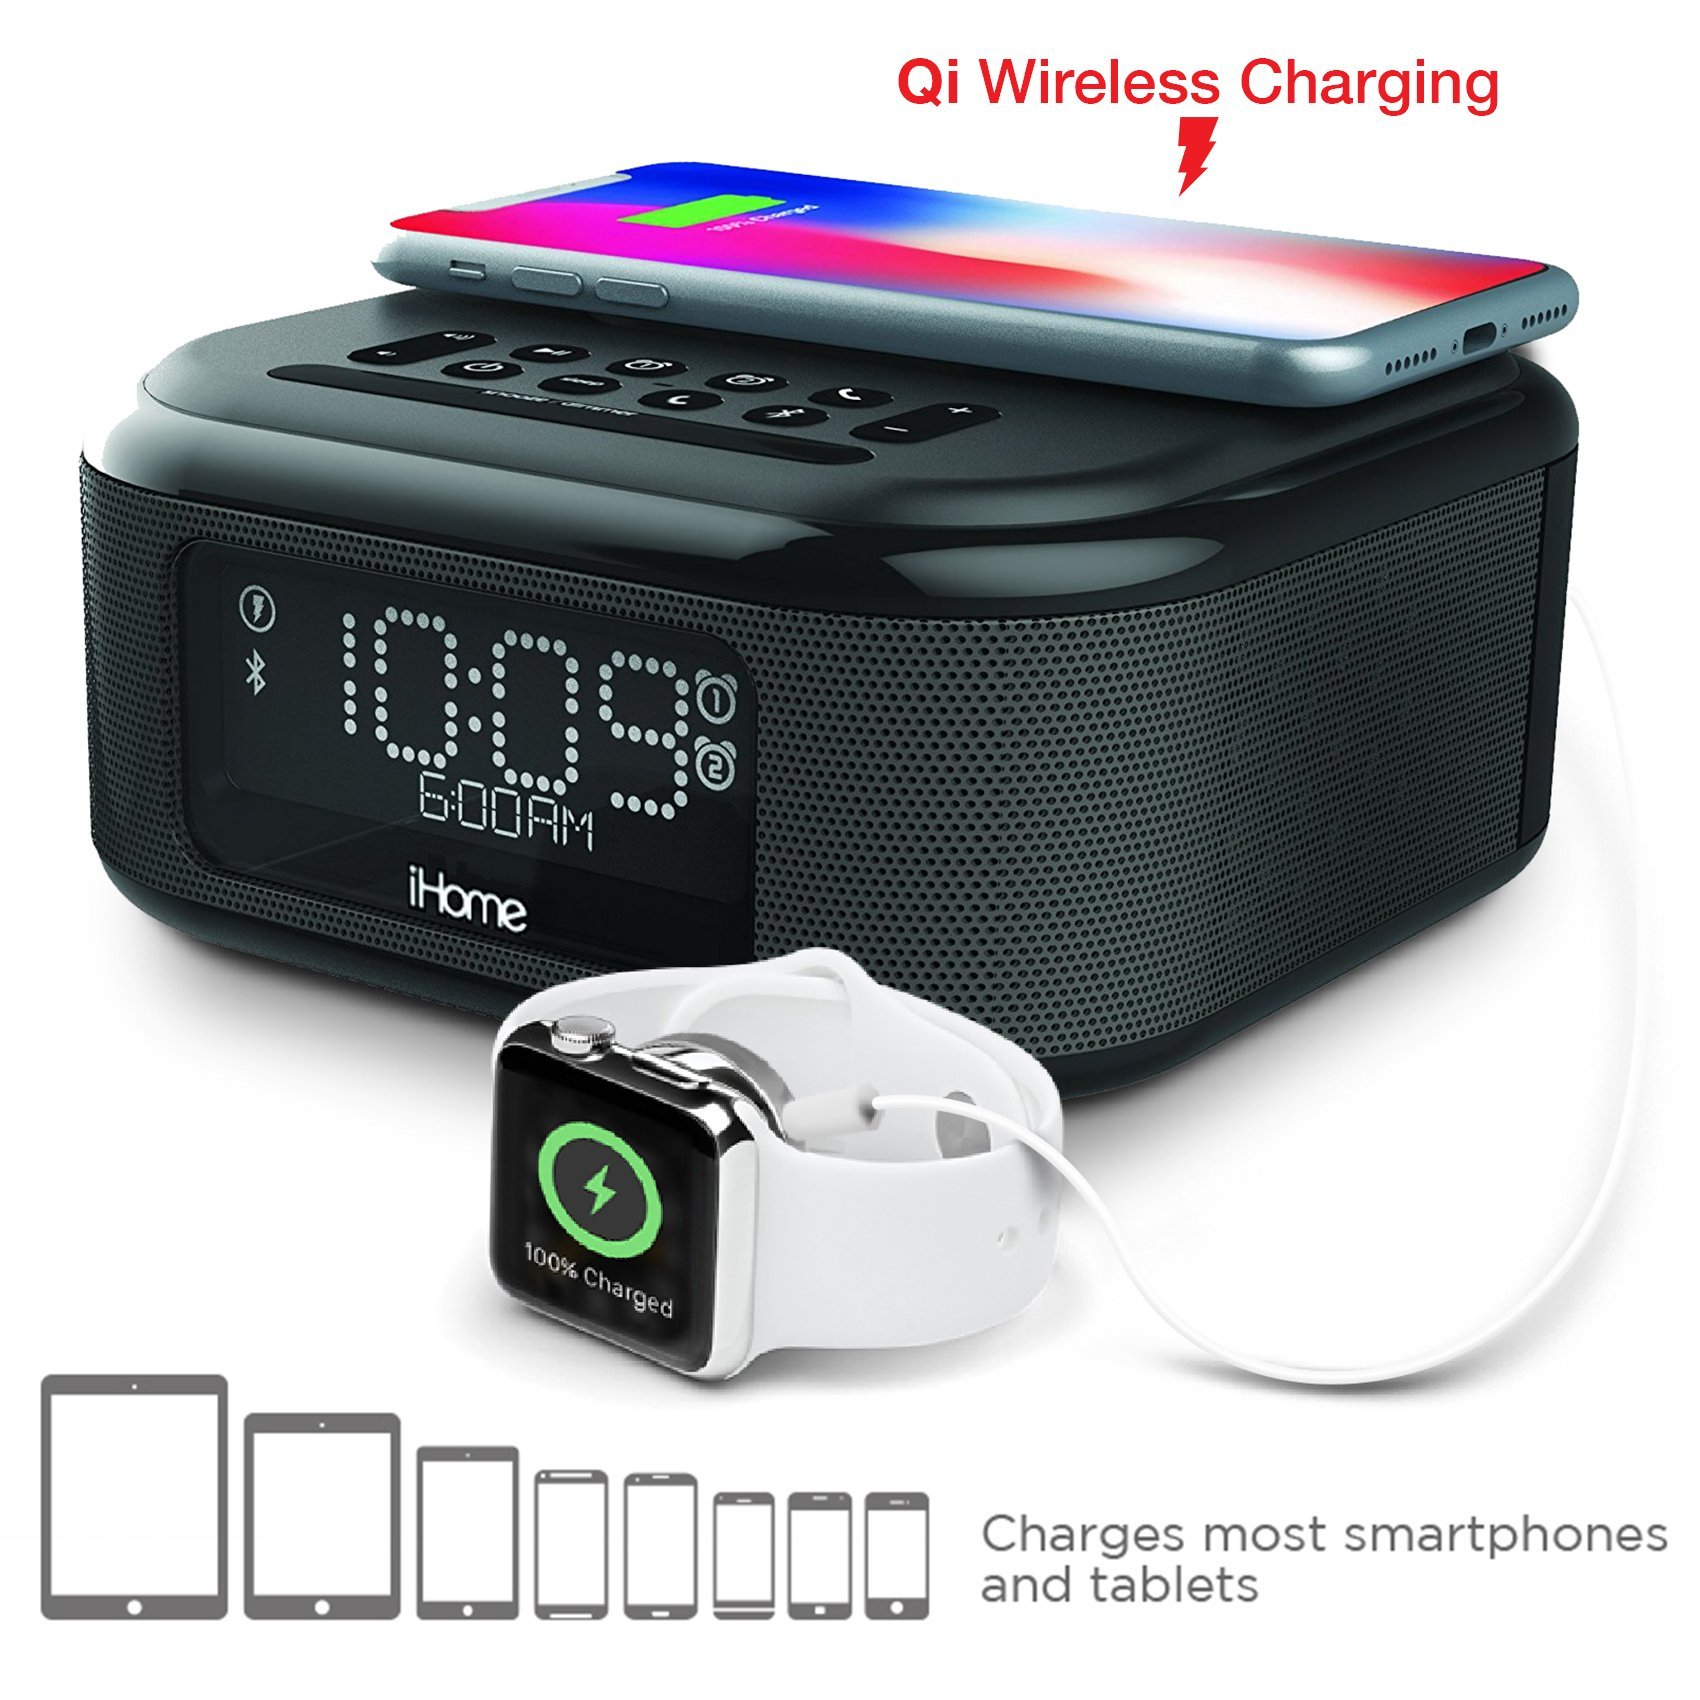 iHome iBTW23 Wireless Charging Bluetooth Alarm Clock with Speakerphone & USB Charging Port for iPhone X 8/8Plus & More